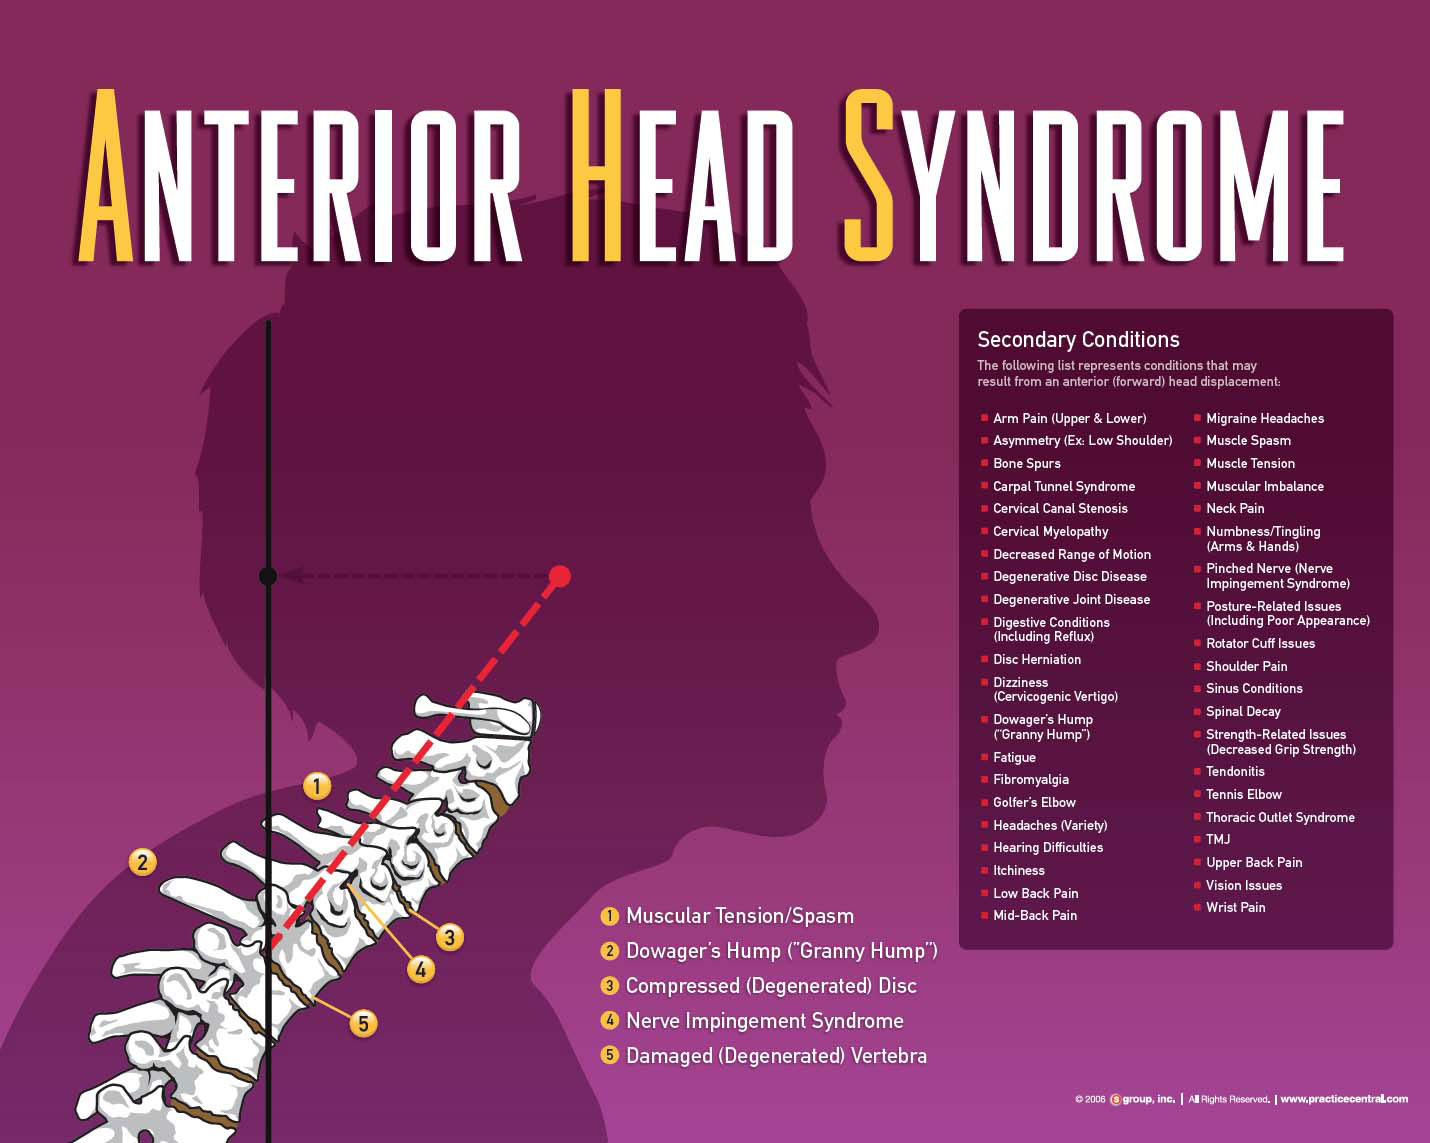 Anterior head syndrome can lead to problems like headaches, migraines, shoulder pain, TMJ, disc degeneration, muscle spasm, nerve impingement.